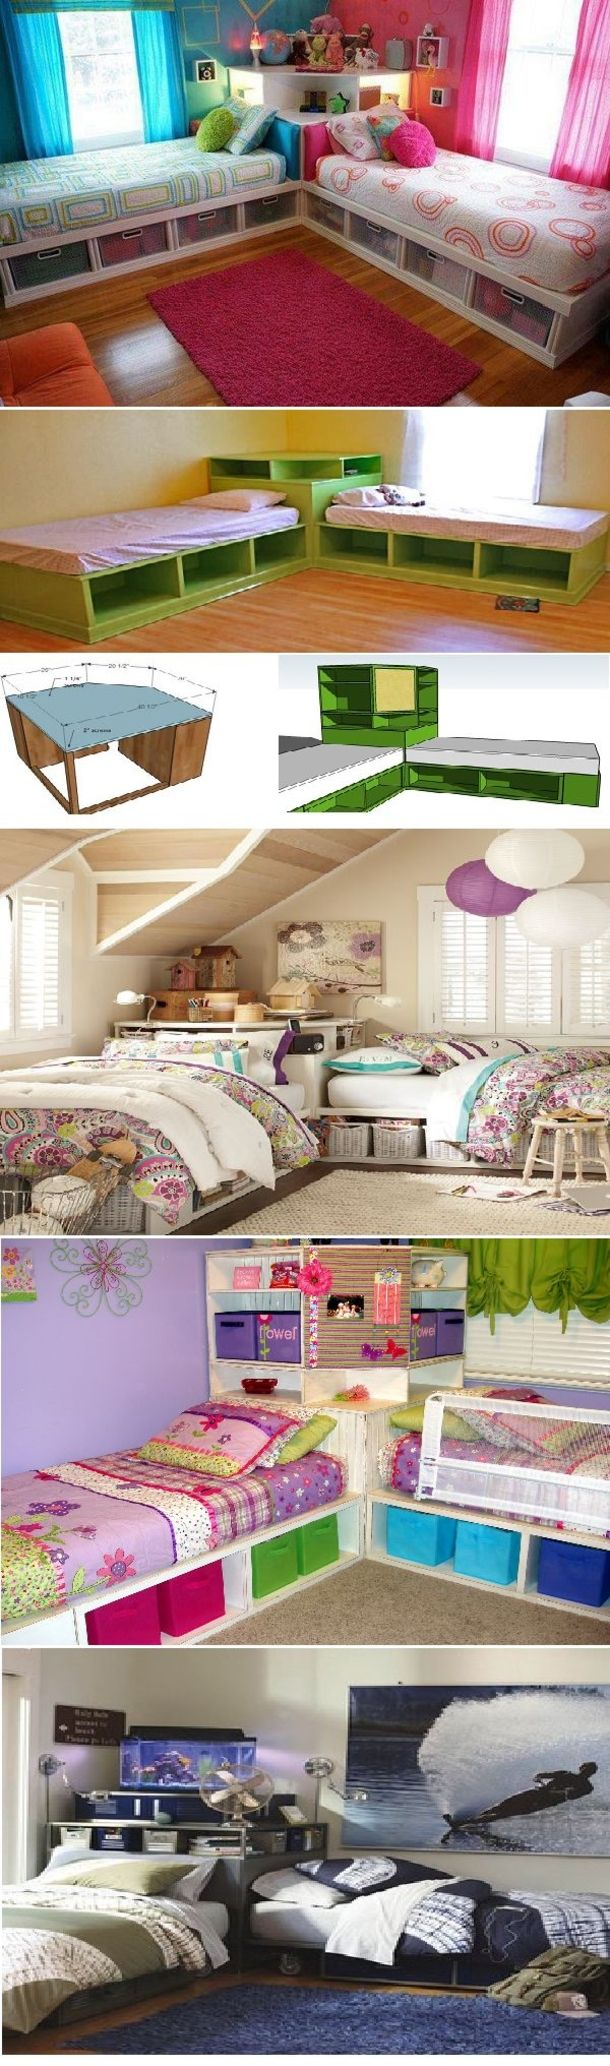 Best Shared Kids Bedrooms Ideas On Pinterest Shared Kids